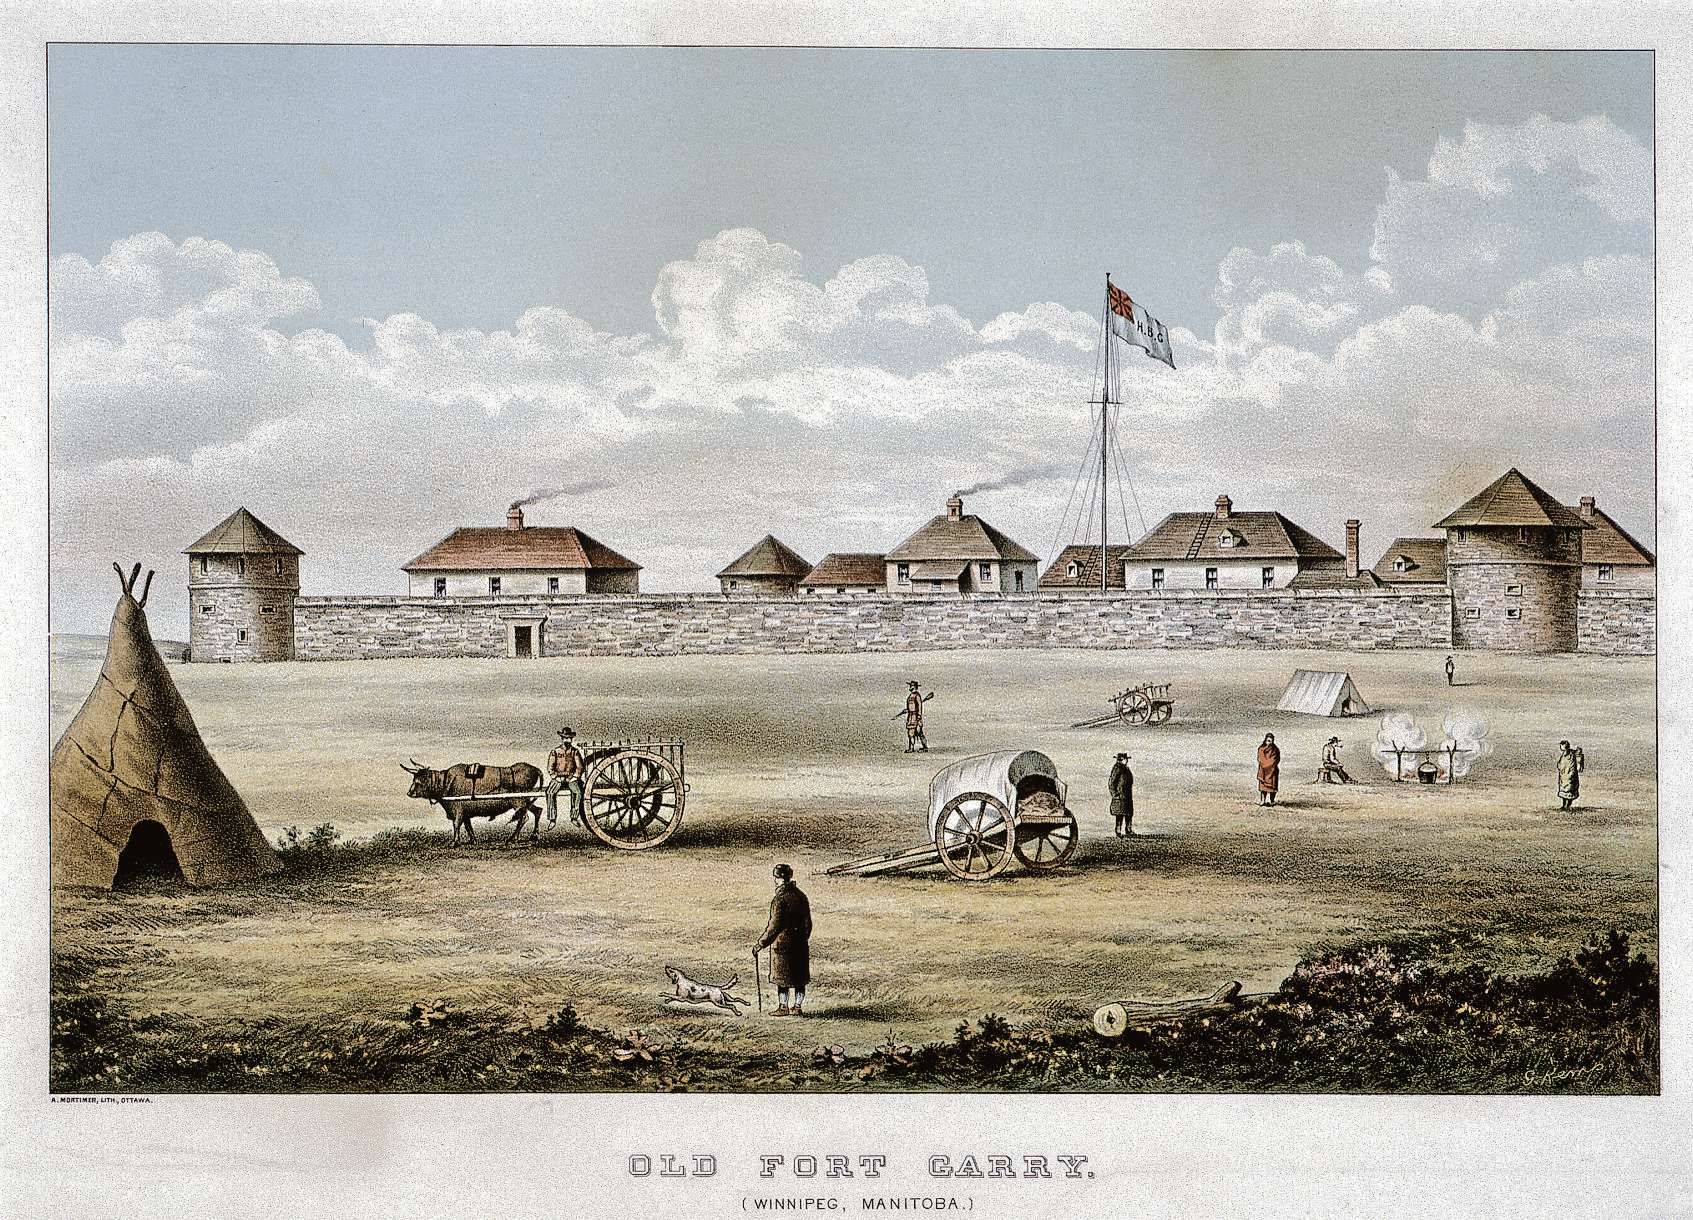 An illustration of Old Fort Garry by artist G. Kemp, which will be featured in the WAG's upcoming exhibit, Kwaata-nihtaawakihk – A Hard Birth.